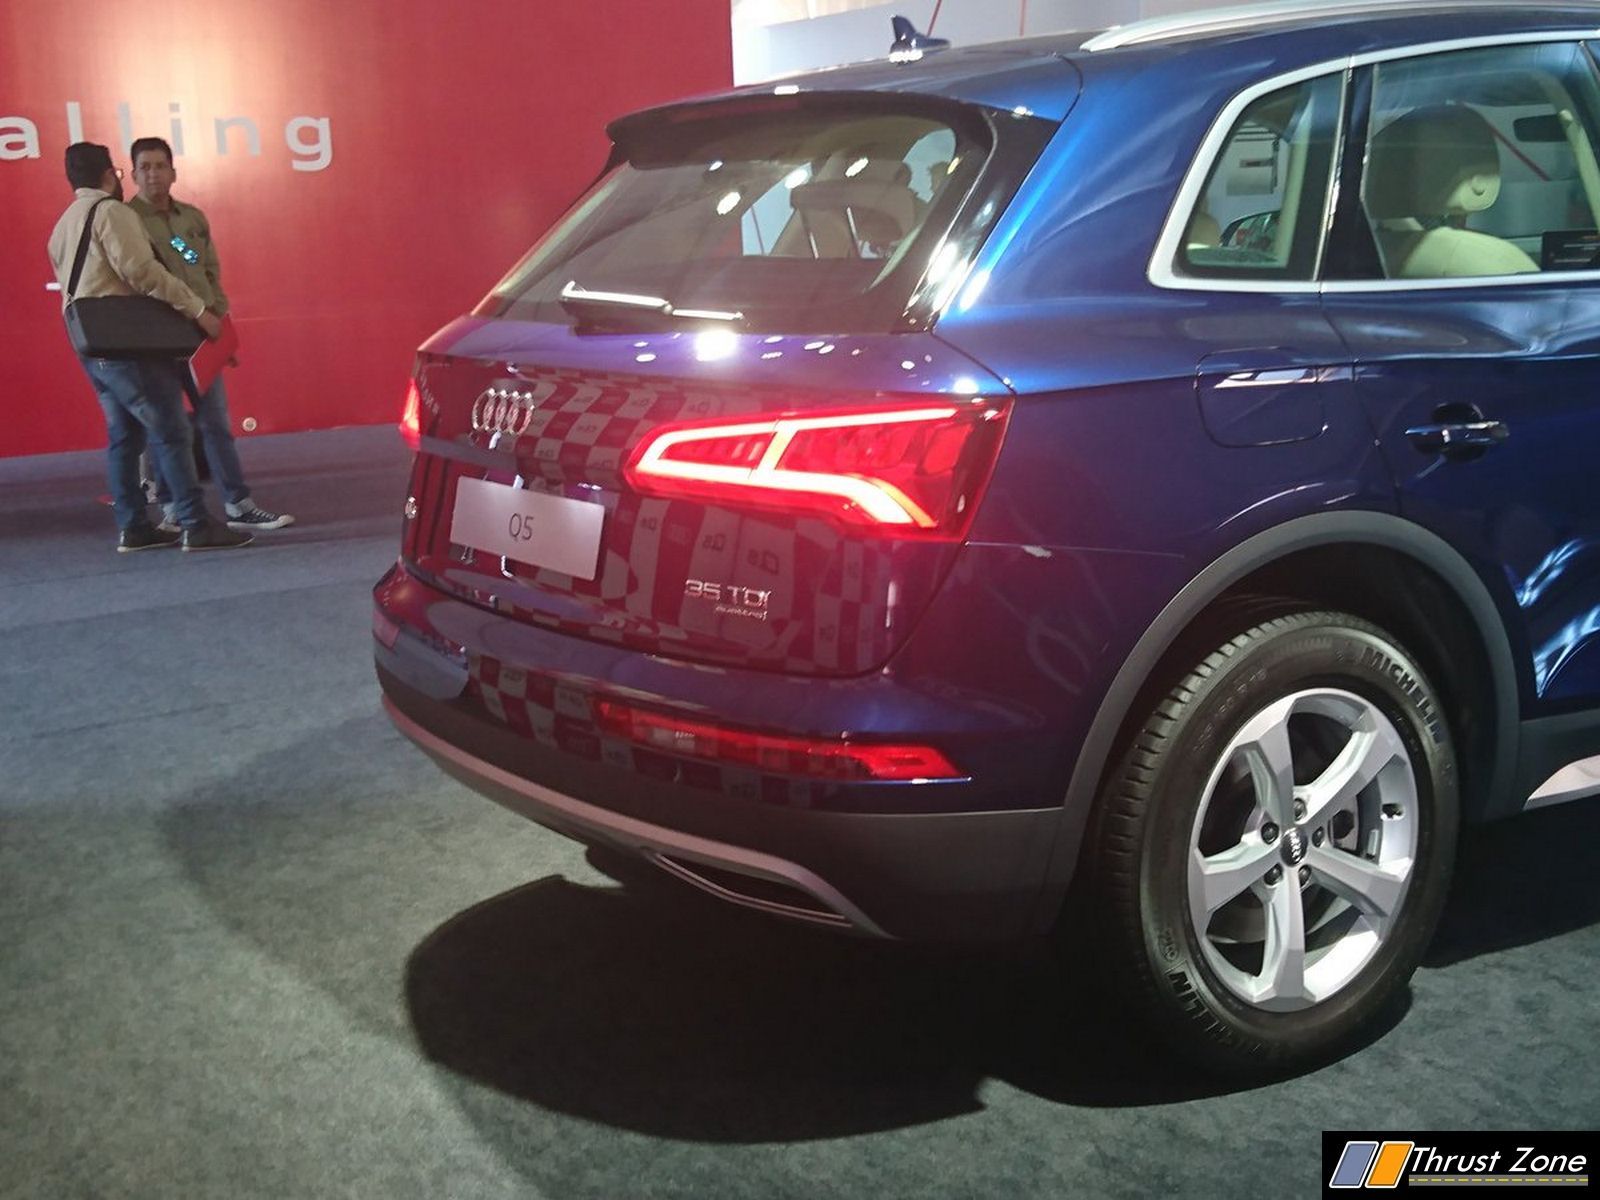 https://www.thrustzone.com/wp-content/uploads/2016/09/Second-Generation-2017-Audi-Q5-Launched-in-India-8.jpg